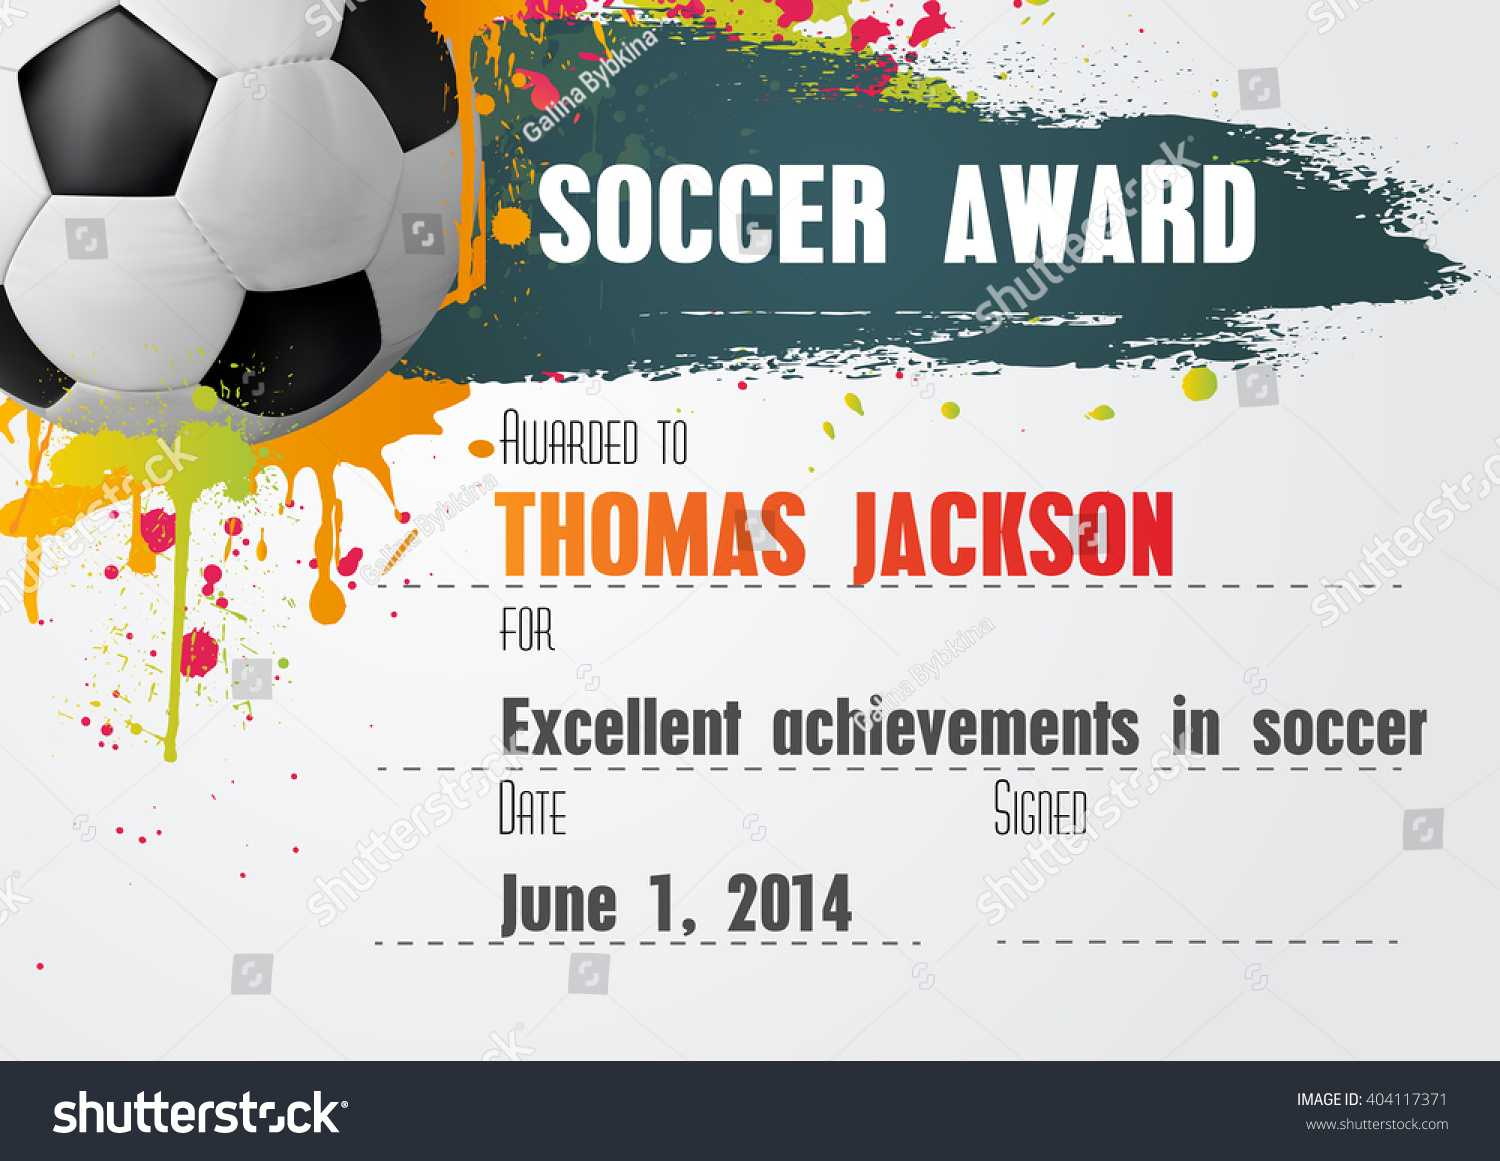 Soccer Certificate Template - Atlantaauctionco in Soccer Certificate Templates For Word